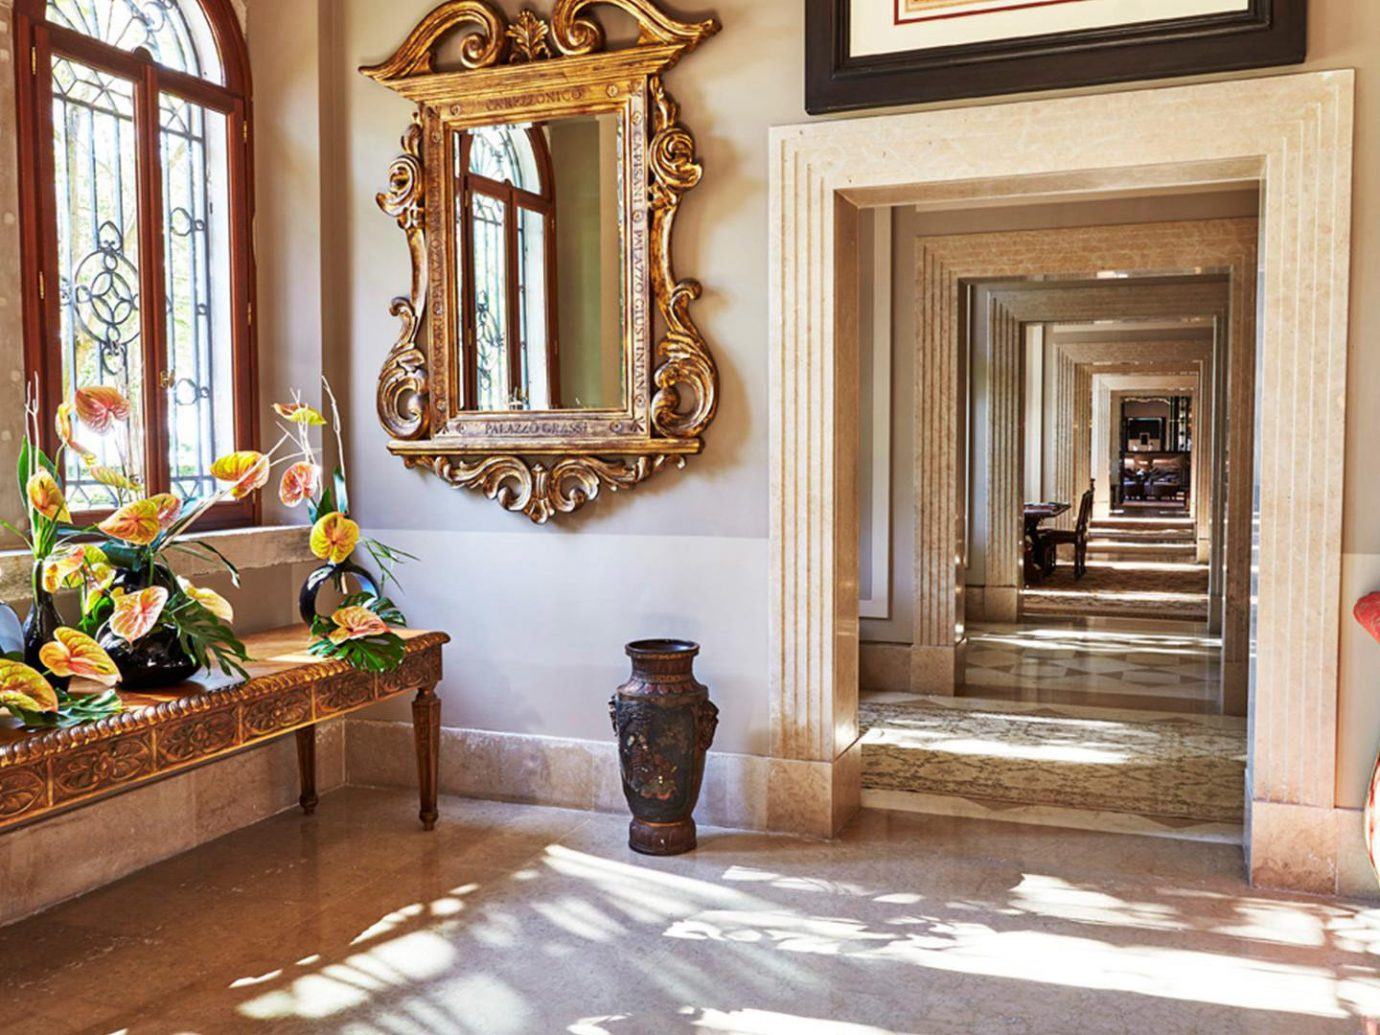 Hotels indoor Living room window property estate home house Lobby living room floor interior design mansion palace wood furniture flooring hall decorated